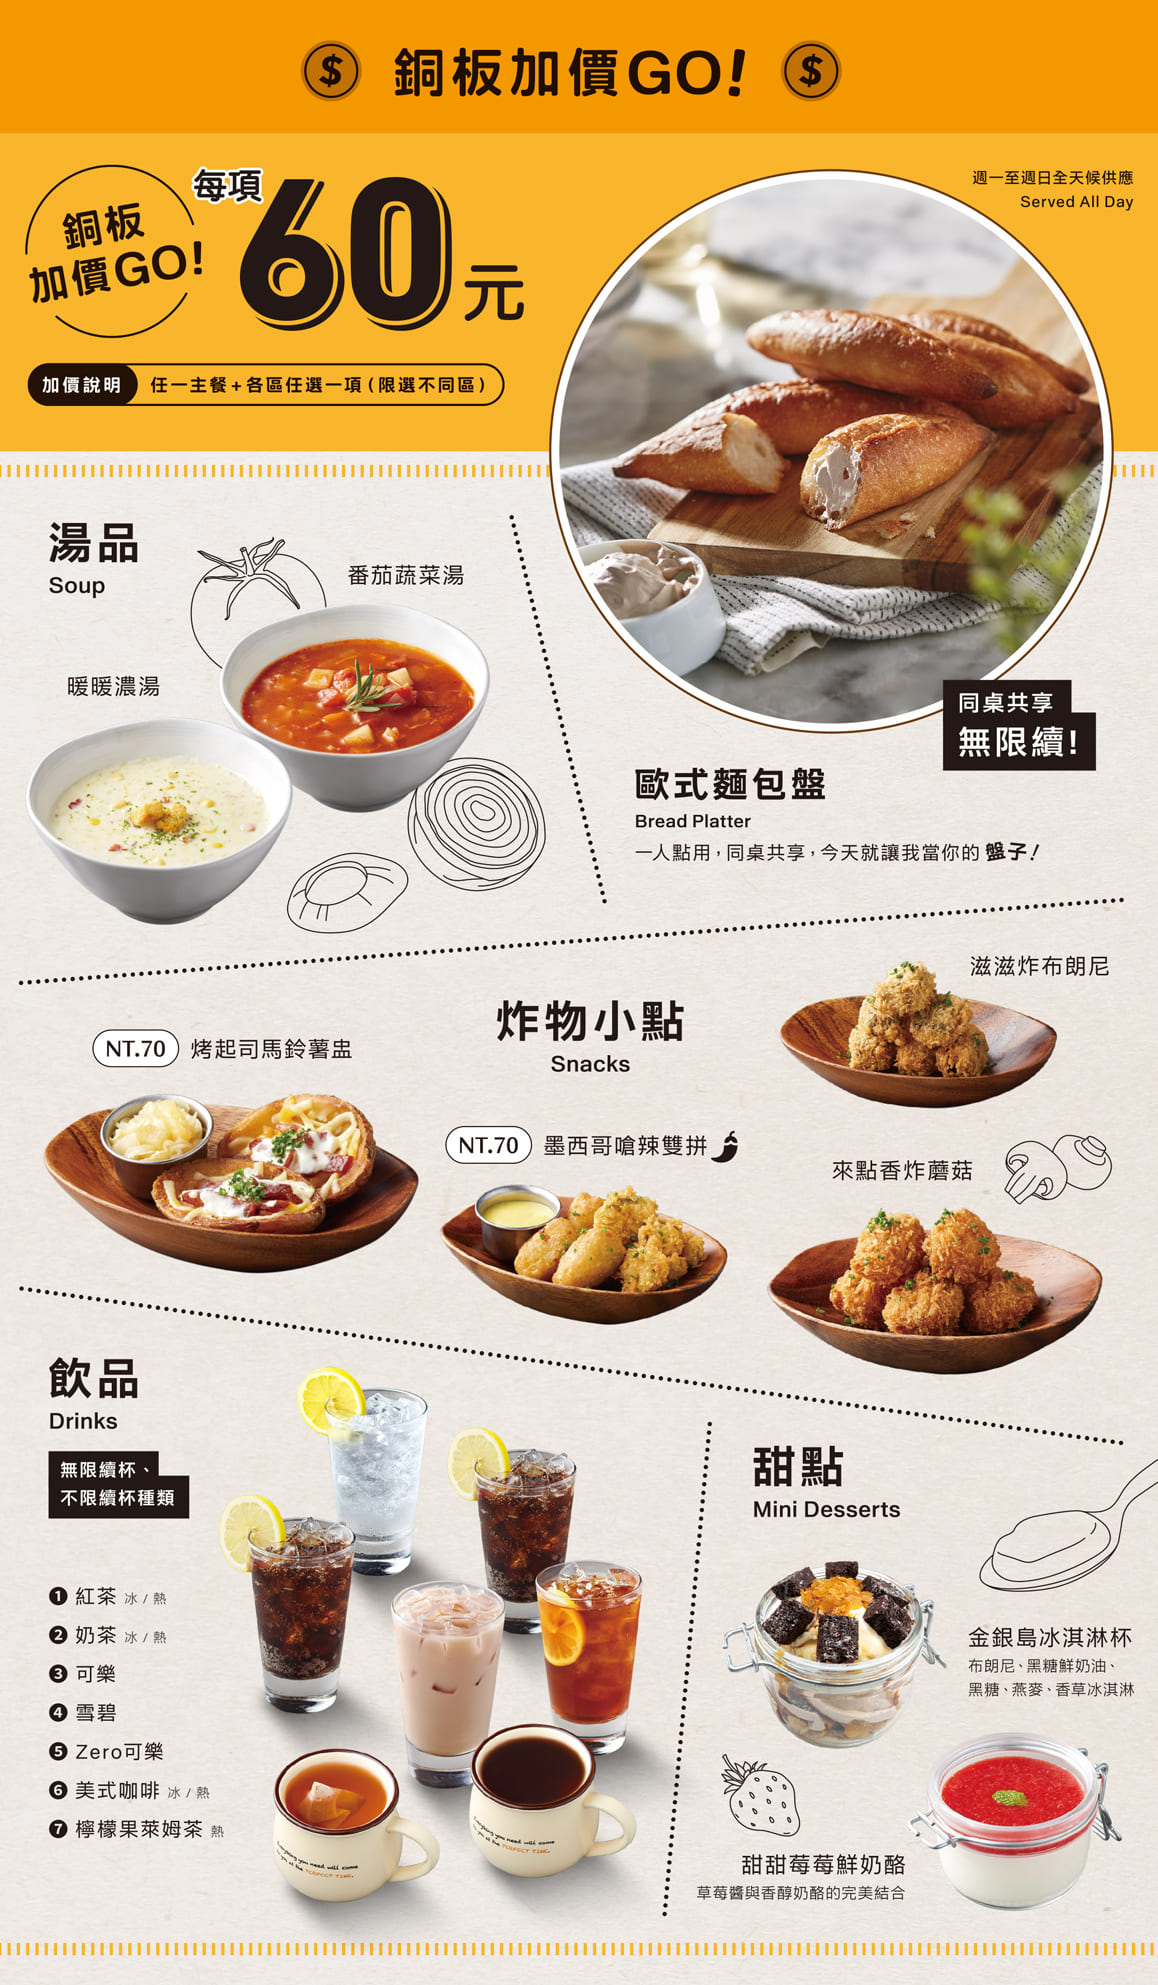 貳樓餐廳Second Floor Cafe菜單MENU